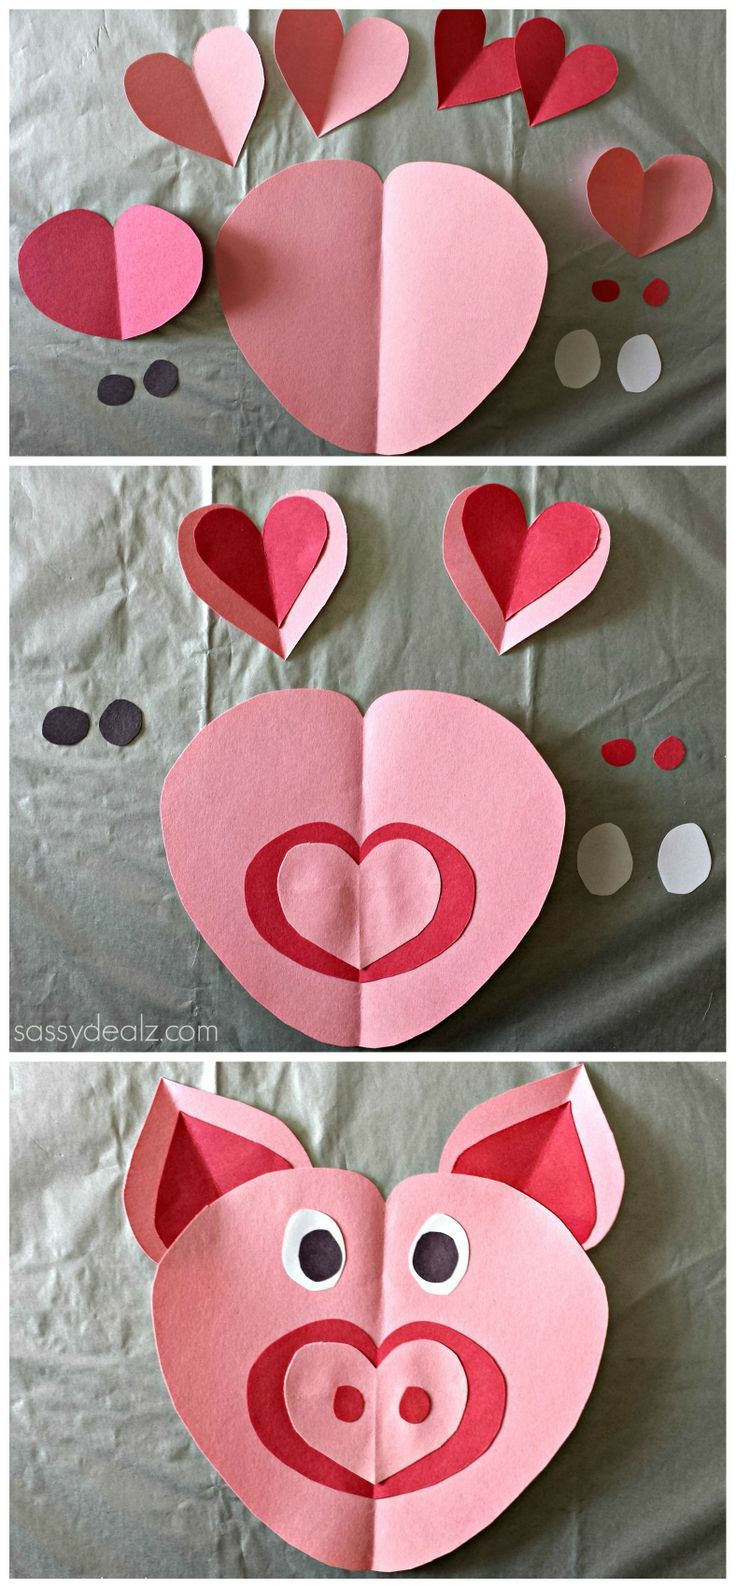 Easy valentine crafts for kindergarten - Heart Pig Craft For Kids